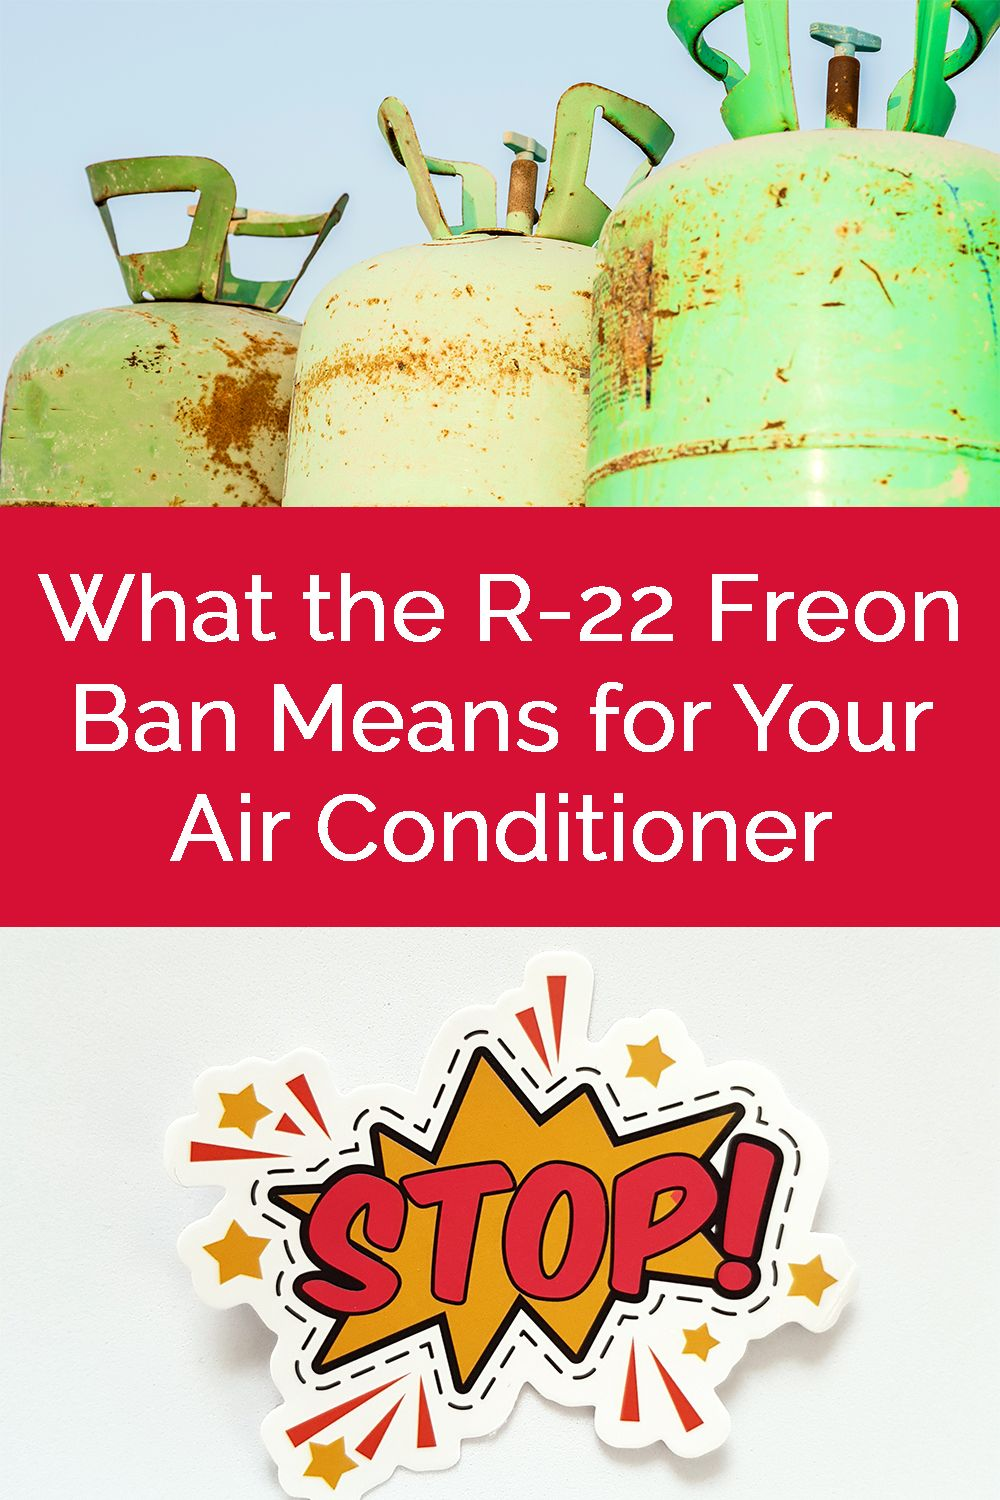 If Your Air Conditioner Uses Freon It Might Be Time For A Switch